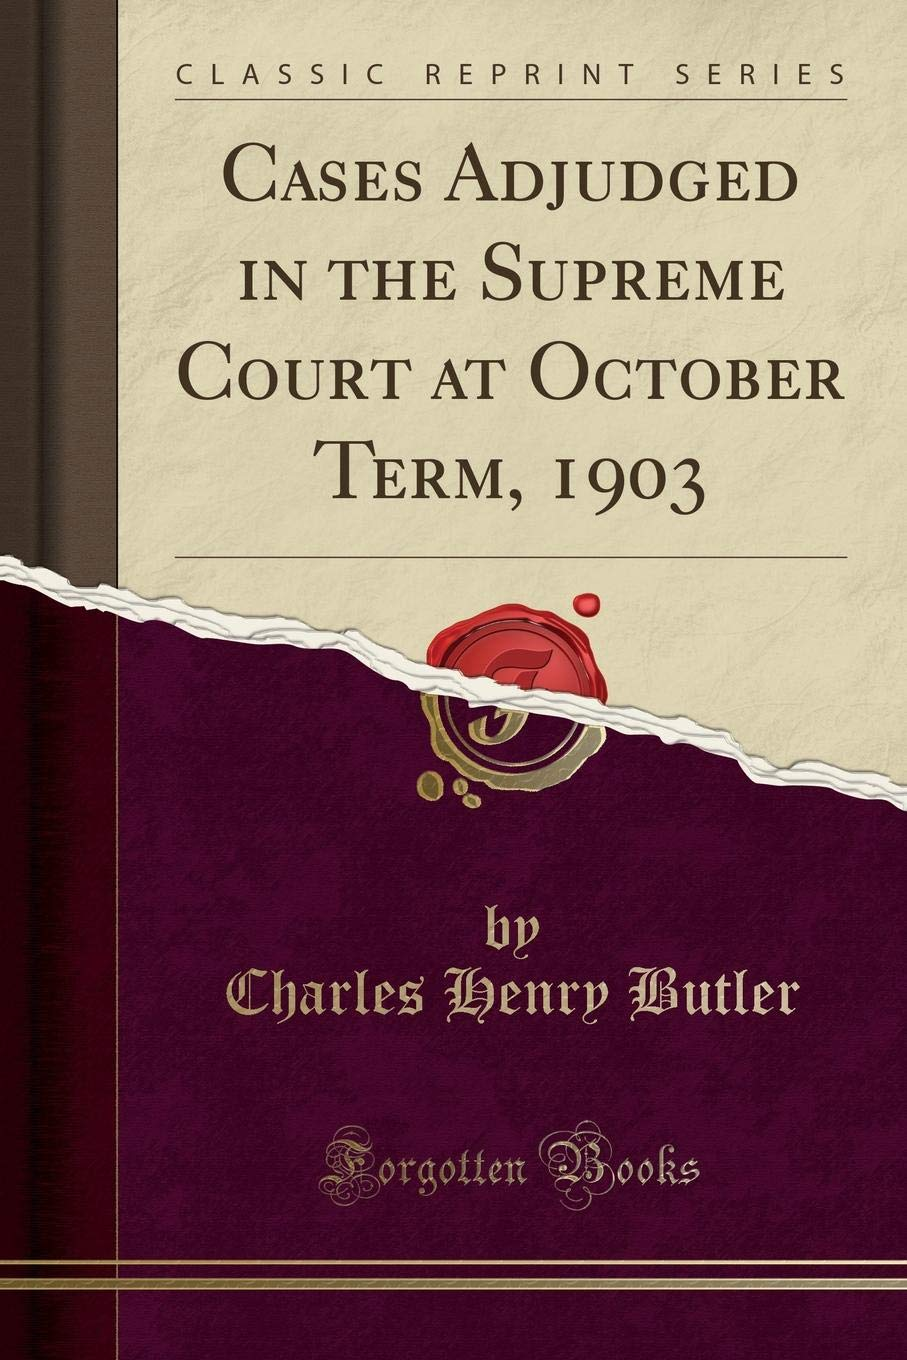 Read Online Cases Adjudged in the Supreme Court at October Term, 1903 (Classic Reprint) ebook